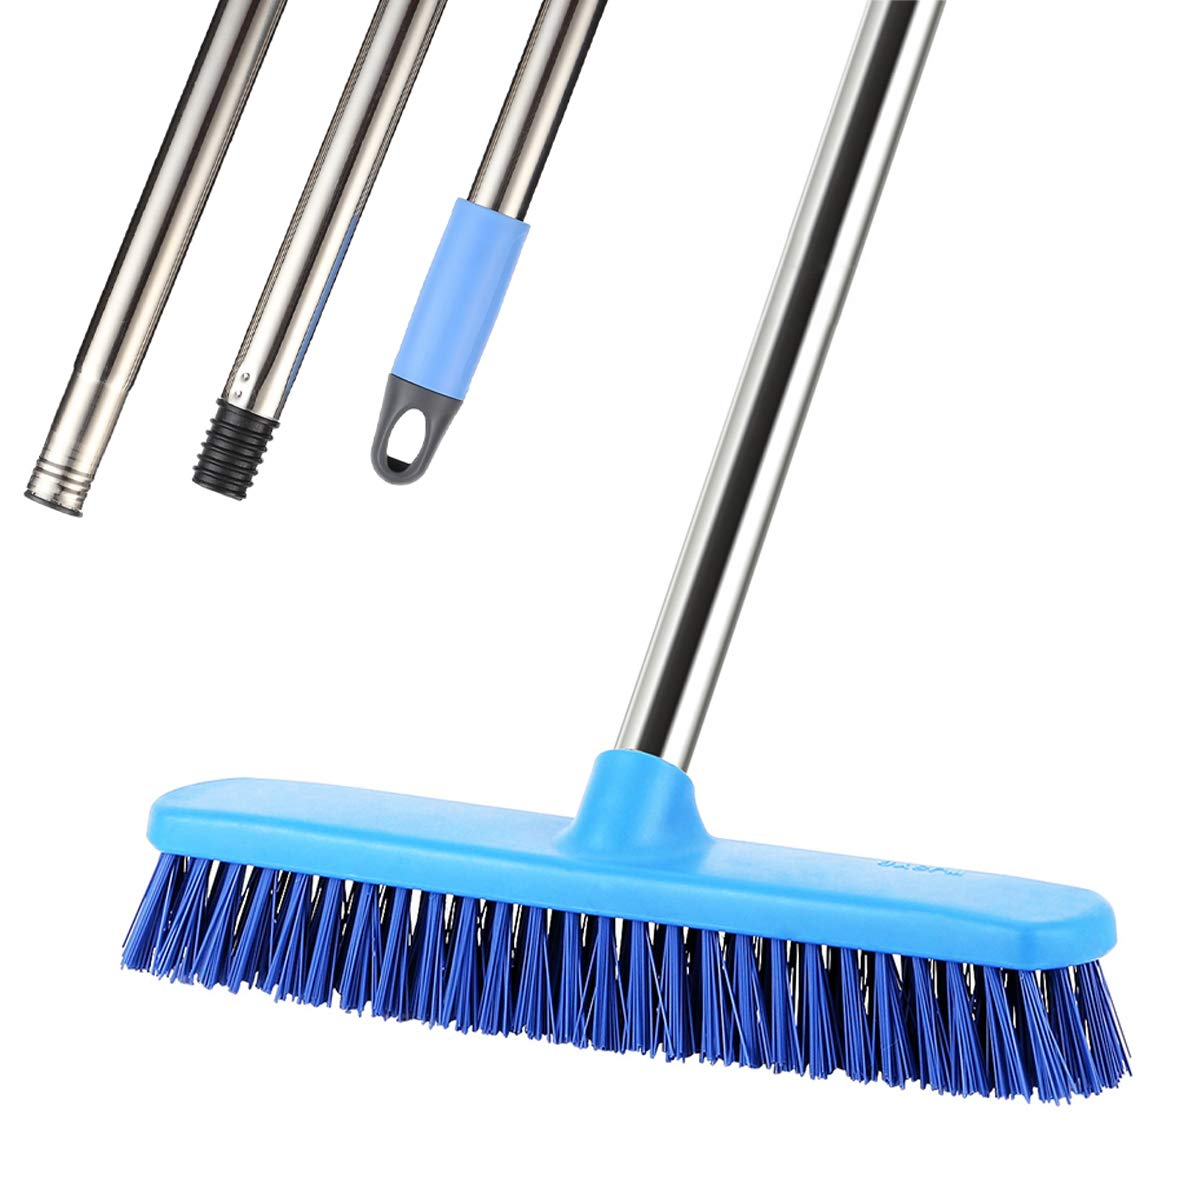 Floor Scrub Brush Commercial, YCUTE 51.6' Removable Long Handle- 12.2' Multi-Surface Stiff Brush for Tile Grout, Concrete, Recesses, Deck and Garage YCUTE 51.6 Removable Long Handle- 12.2 Multi-Surface Stiff Brush for Tile Grout